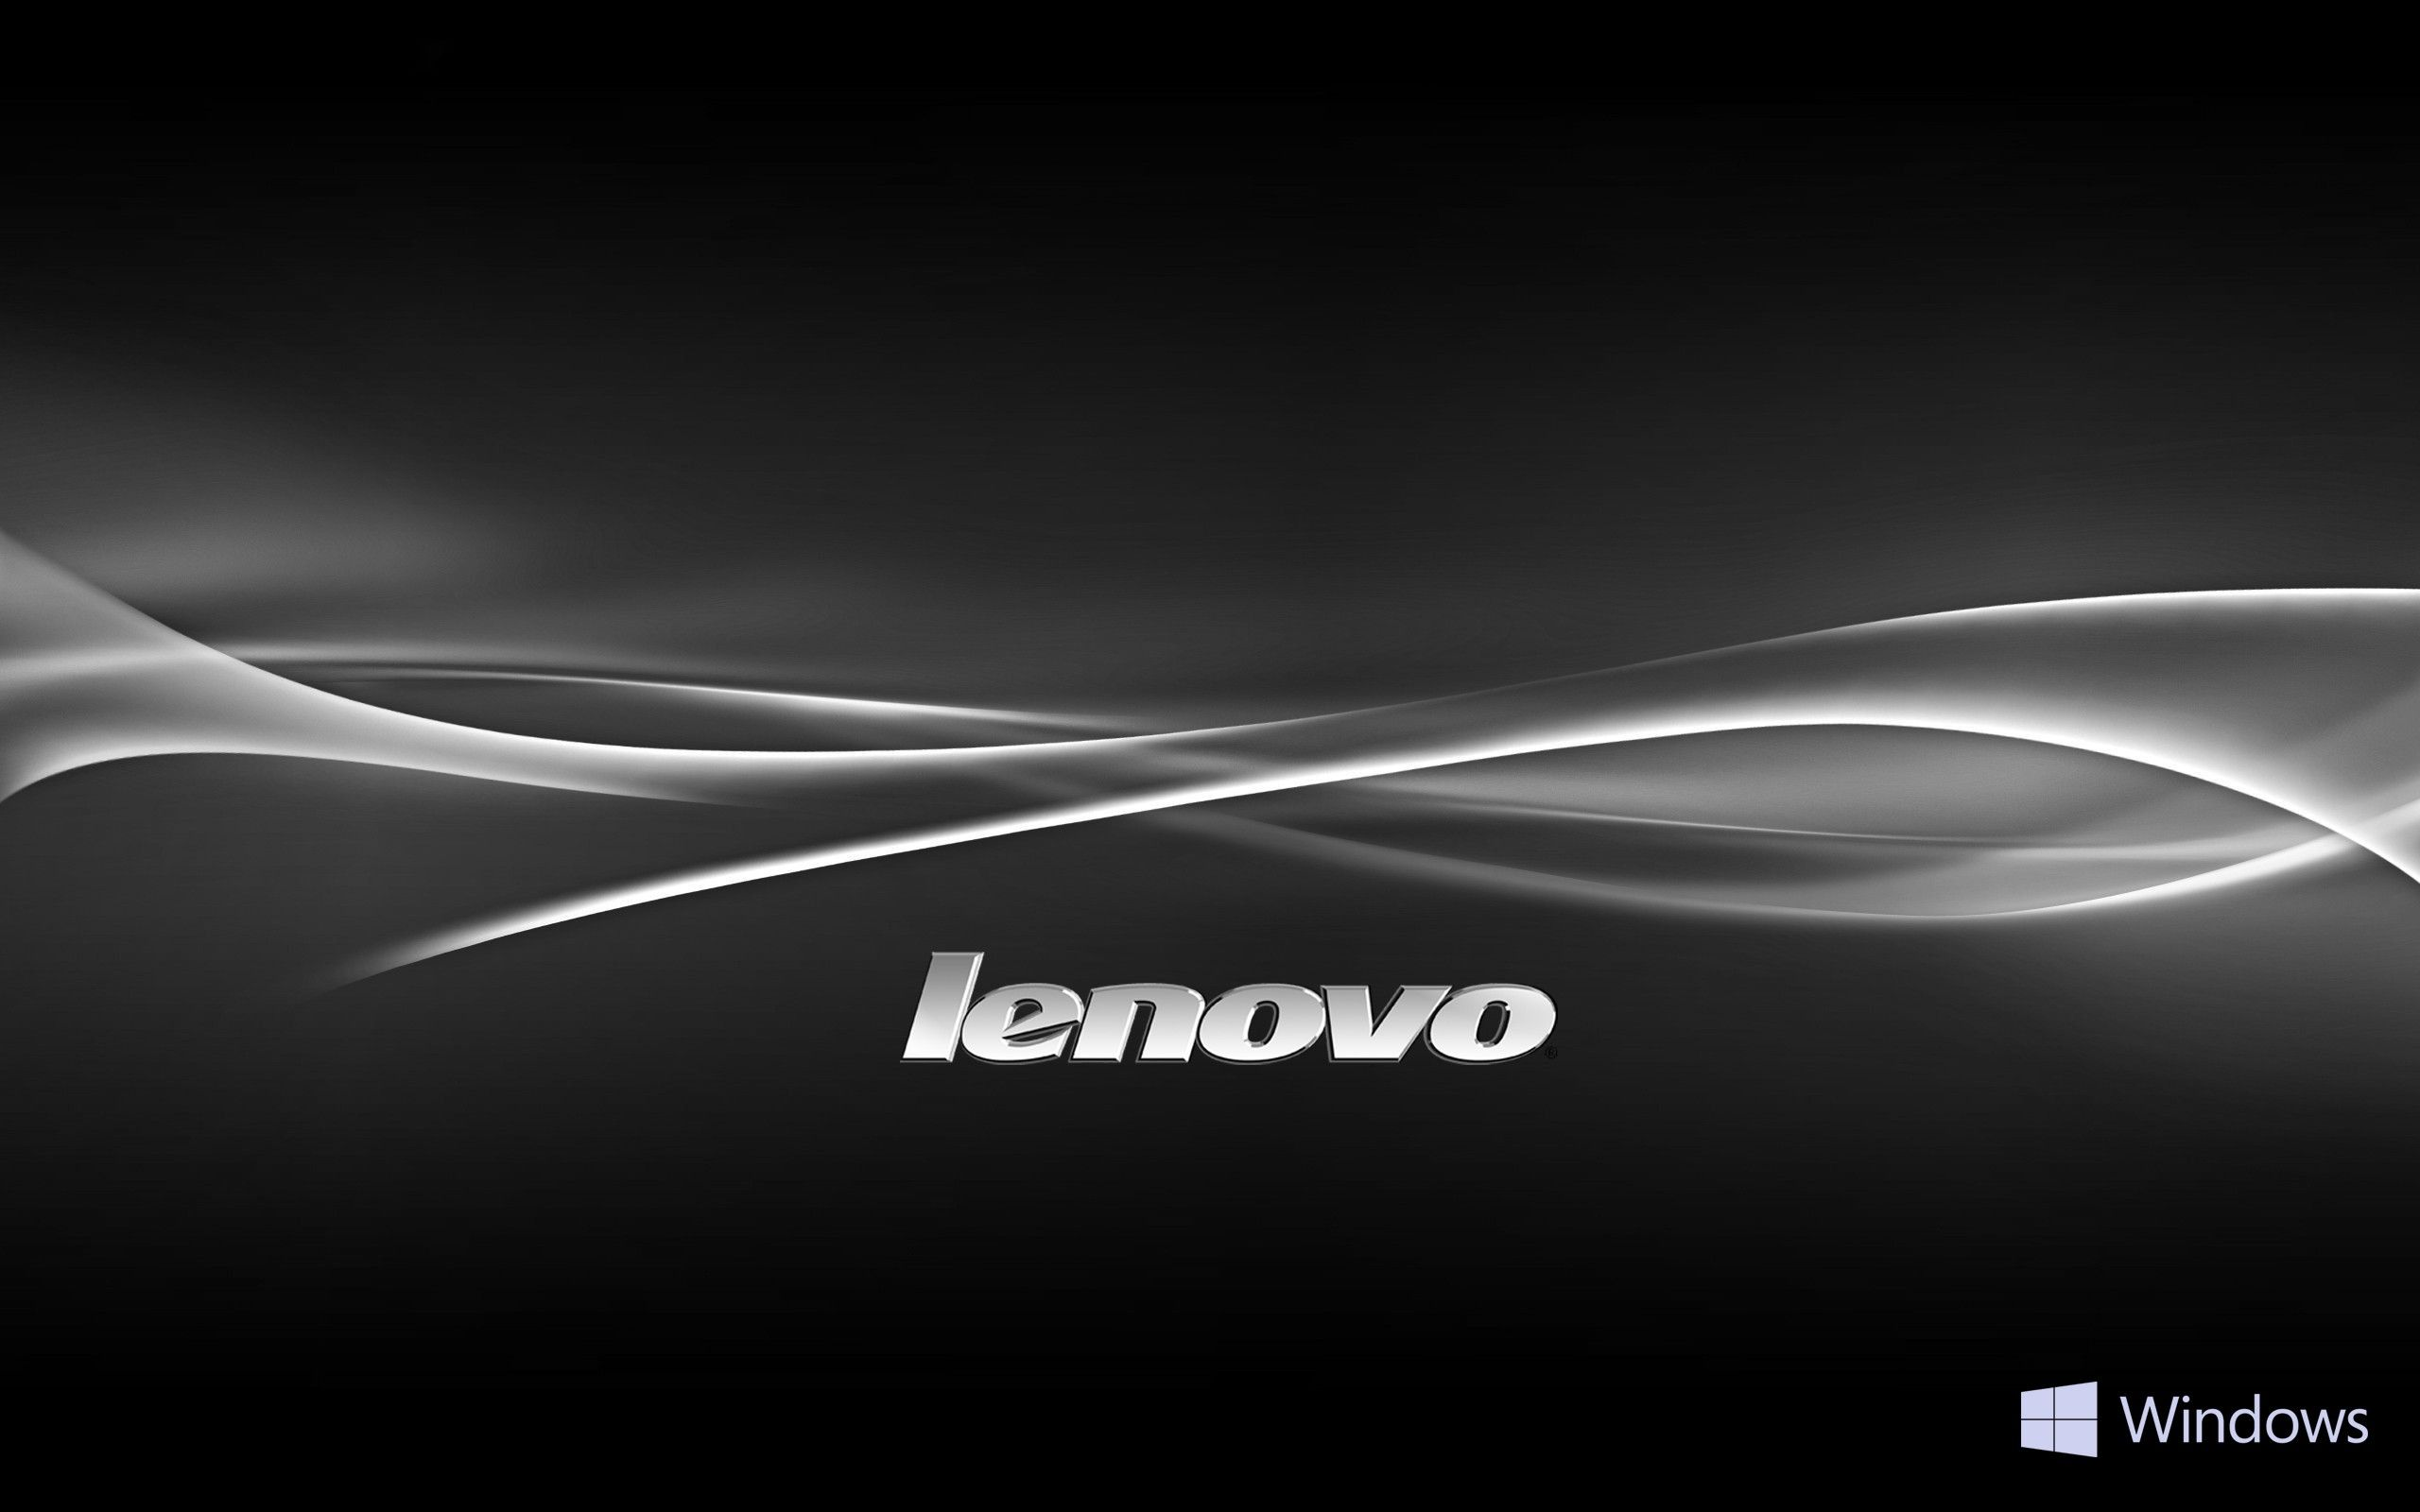 Lovely Lenovo Laptop Wallpapers Free Download Hd Lenovo Wallpapers Laptop Wallpaper Computer Wallpaper Desktop Wallpapers